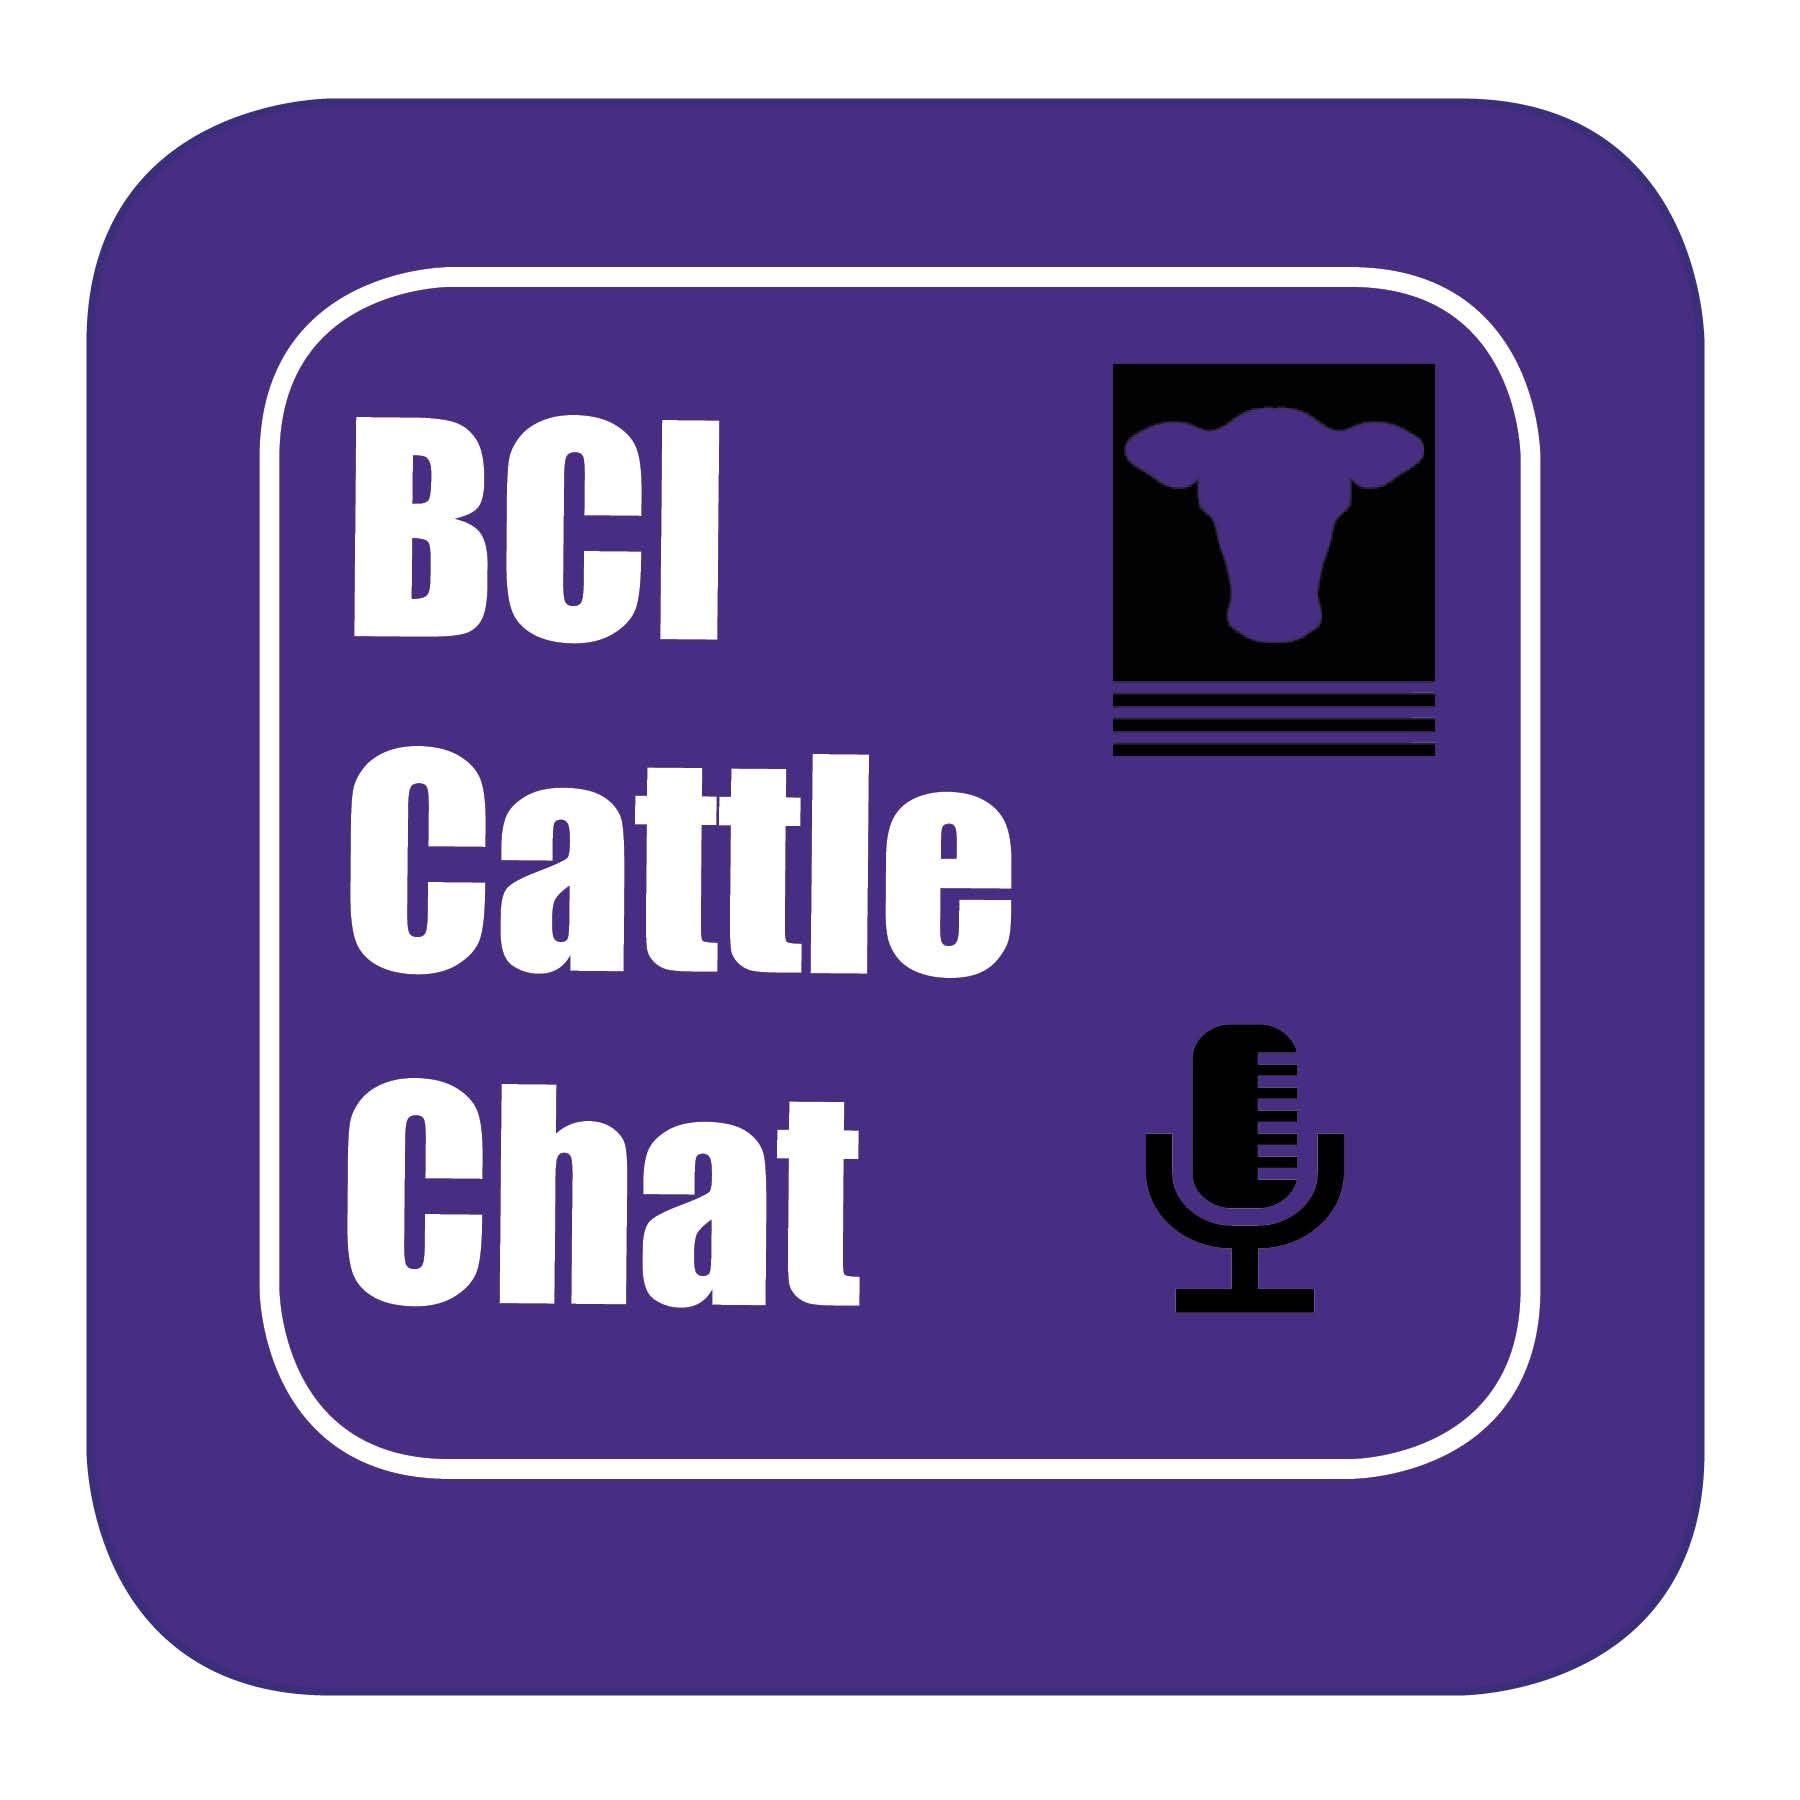 BCI Cattle Chat - Episode 38